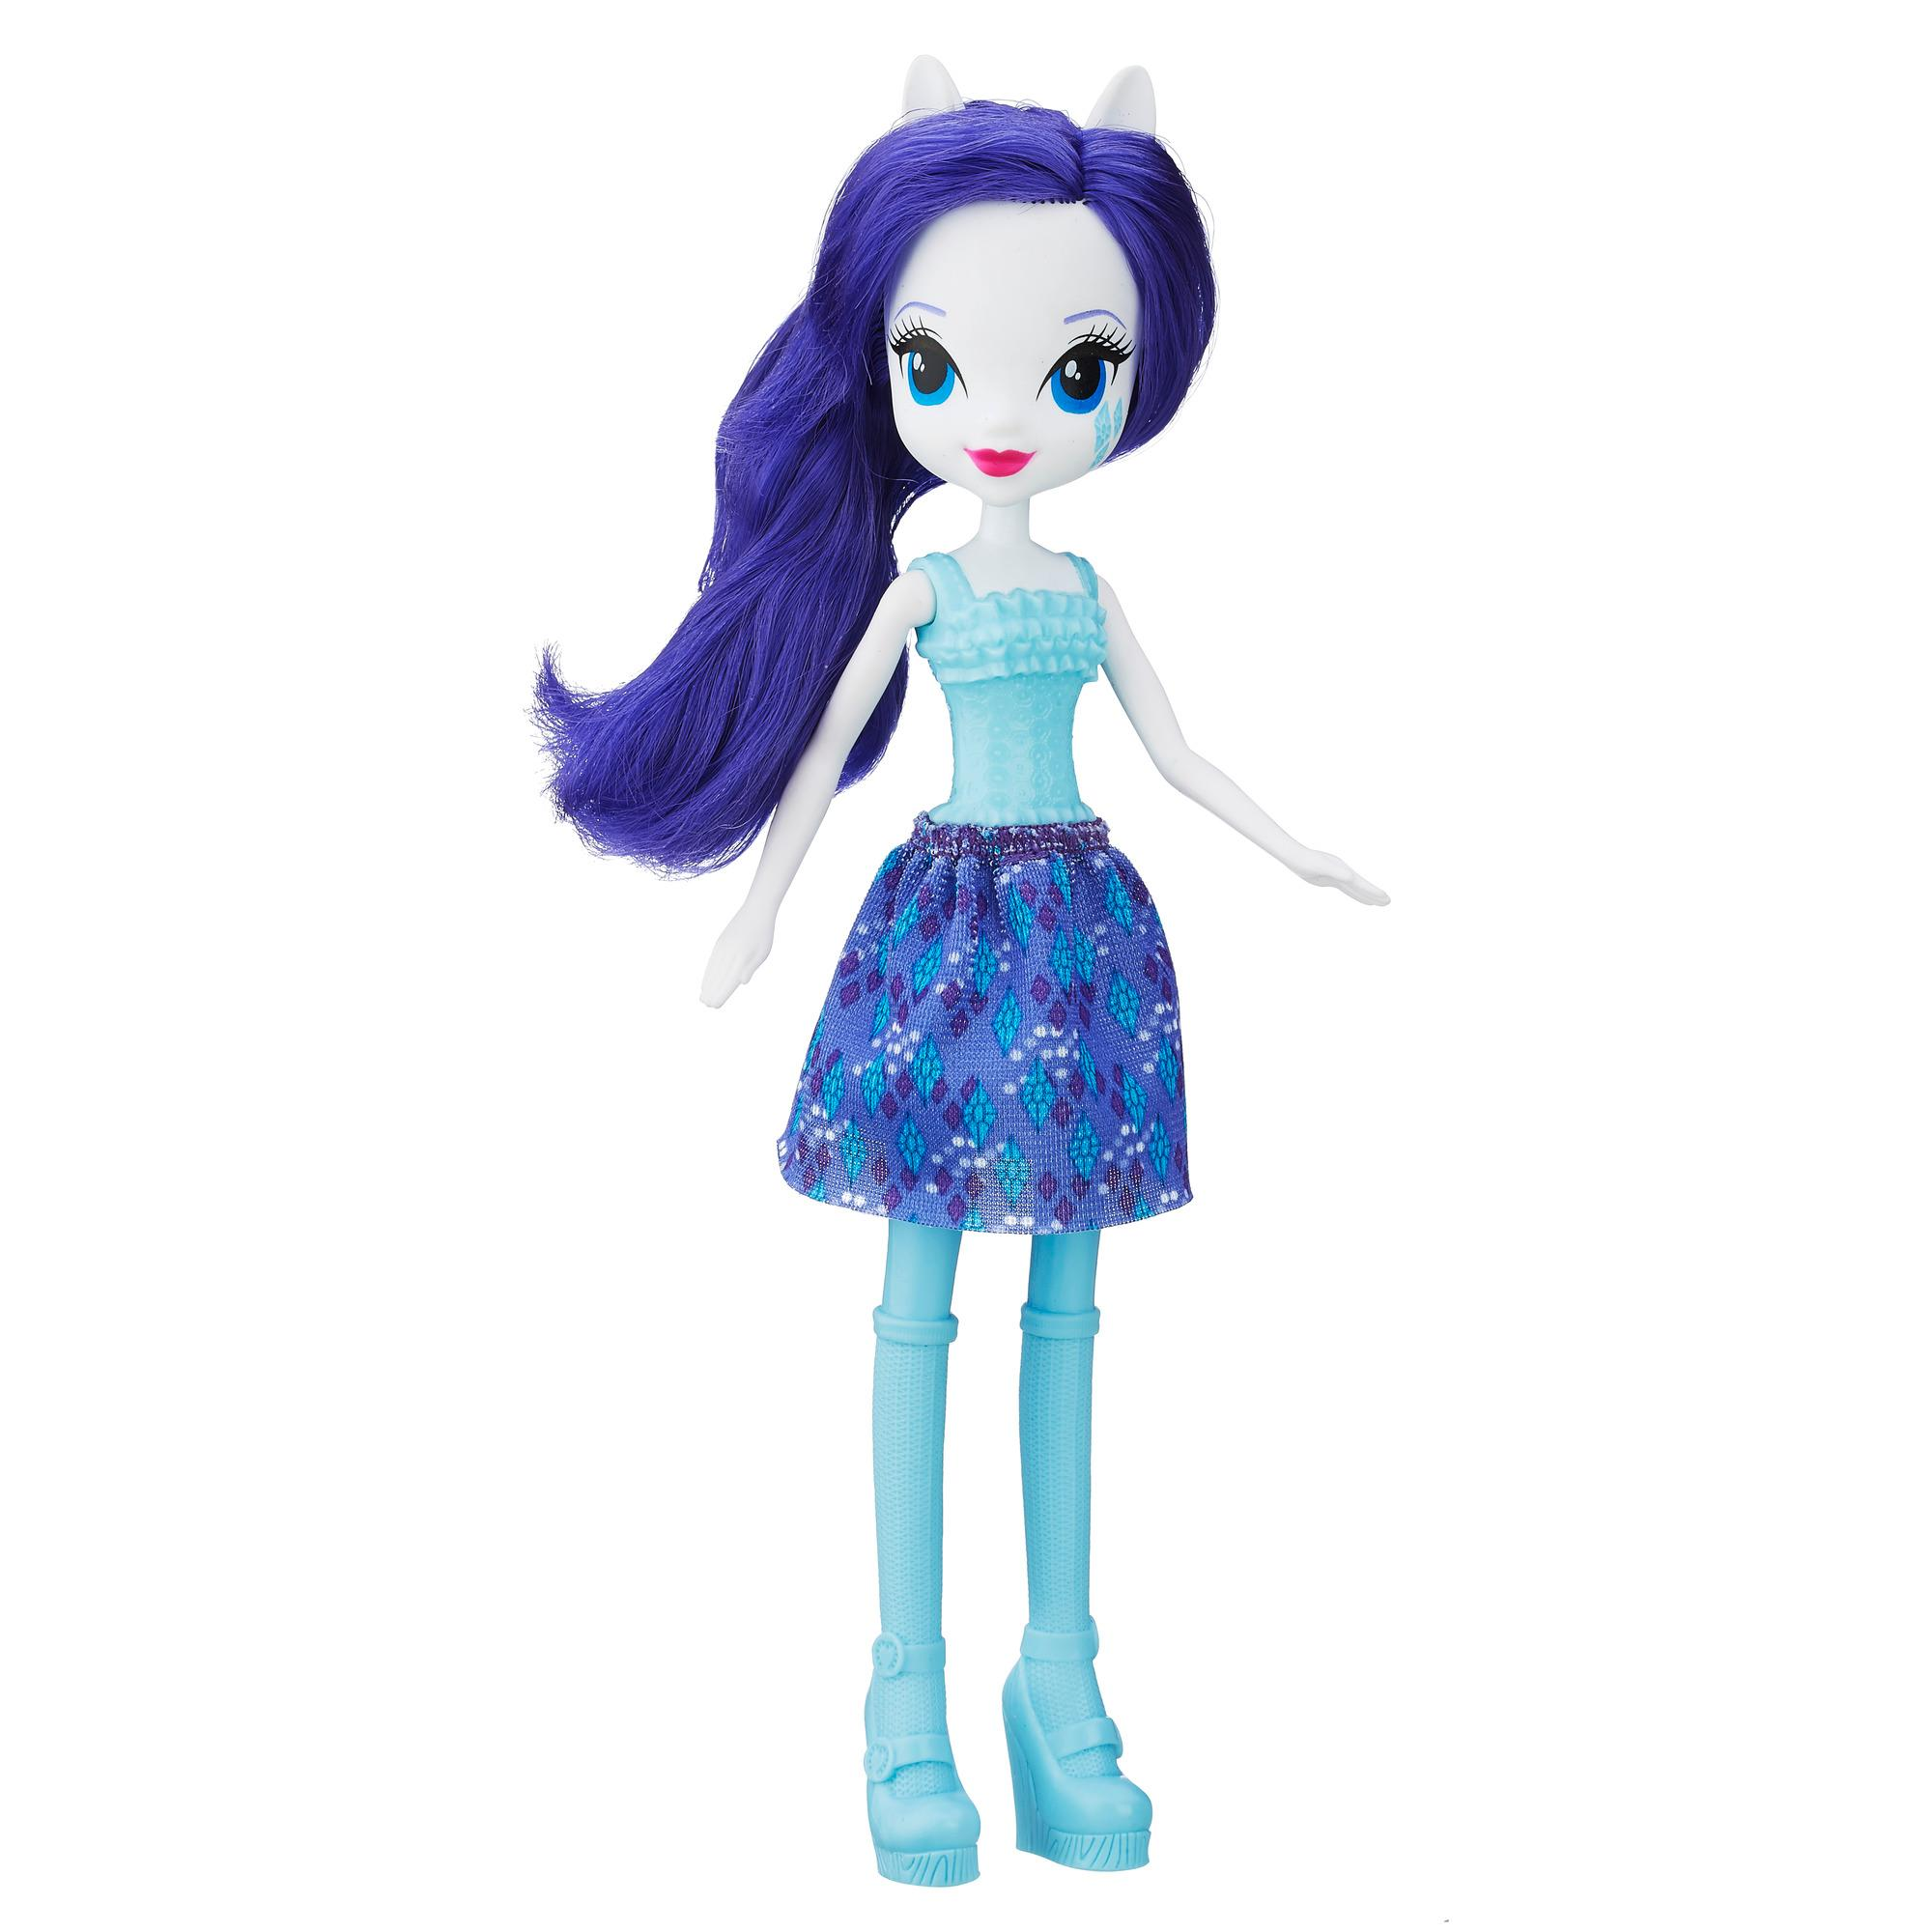 My Little Pony Equestria Girls Rarity Basic Doll